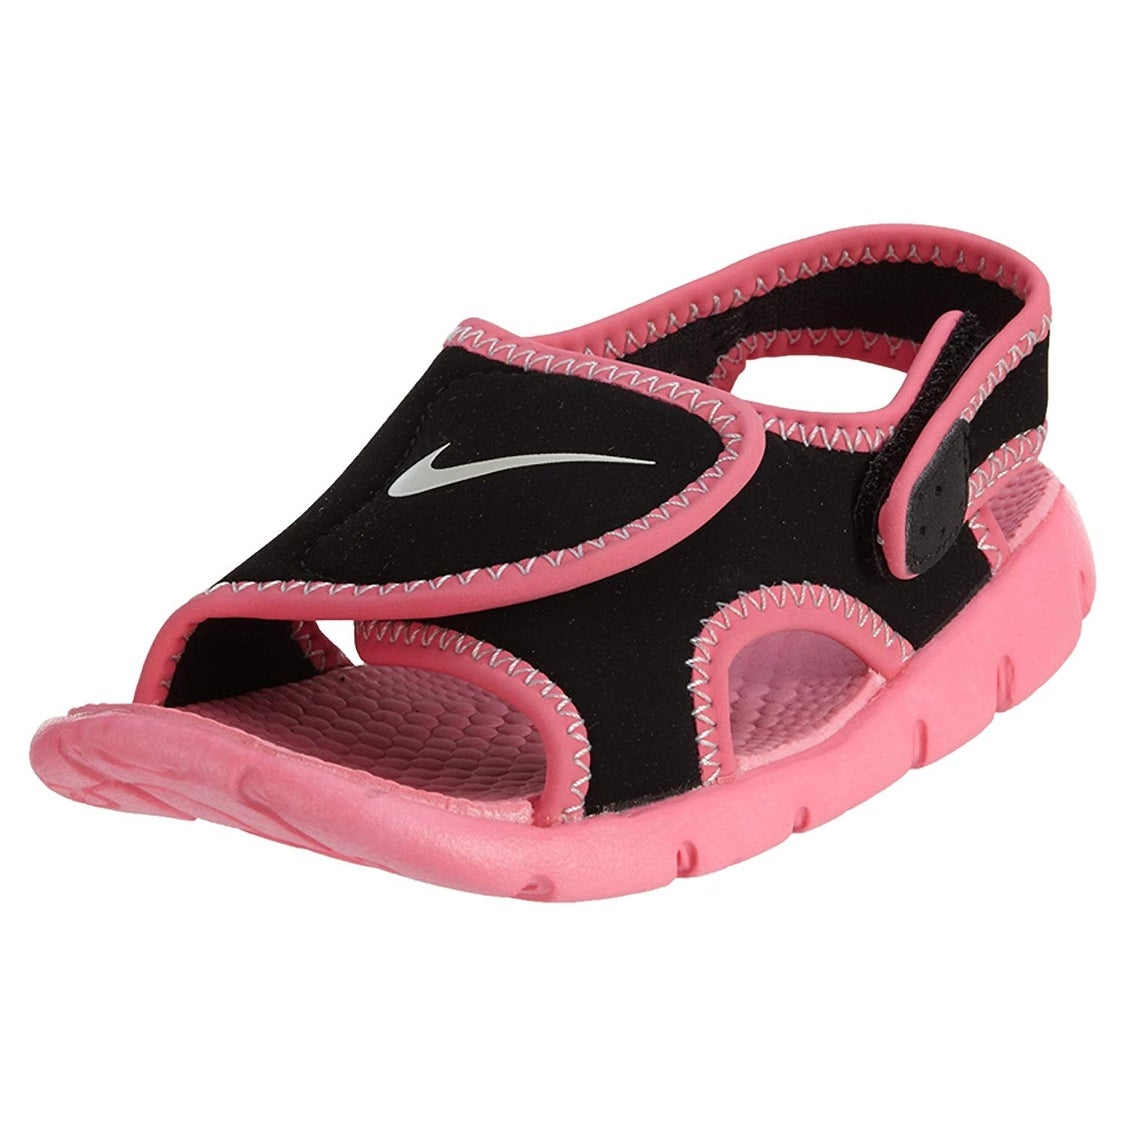 huge discount aba88 e5c59 Shop Nike Sunray Adjust 4 Toddlers Style  386521-001 Size  10 C Us - Free  Shipping Today - Overstock - 25596682